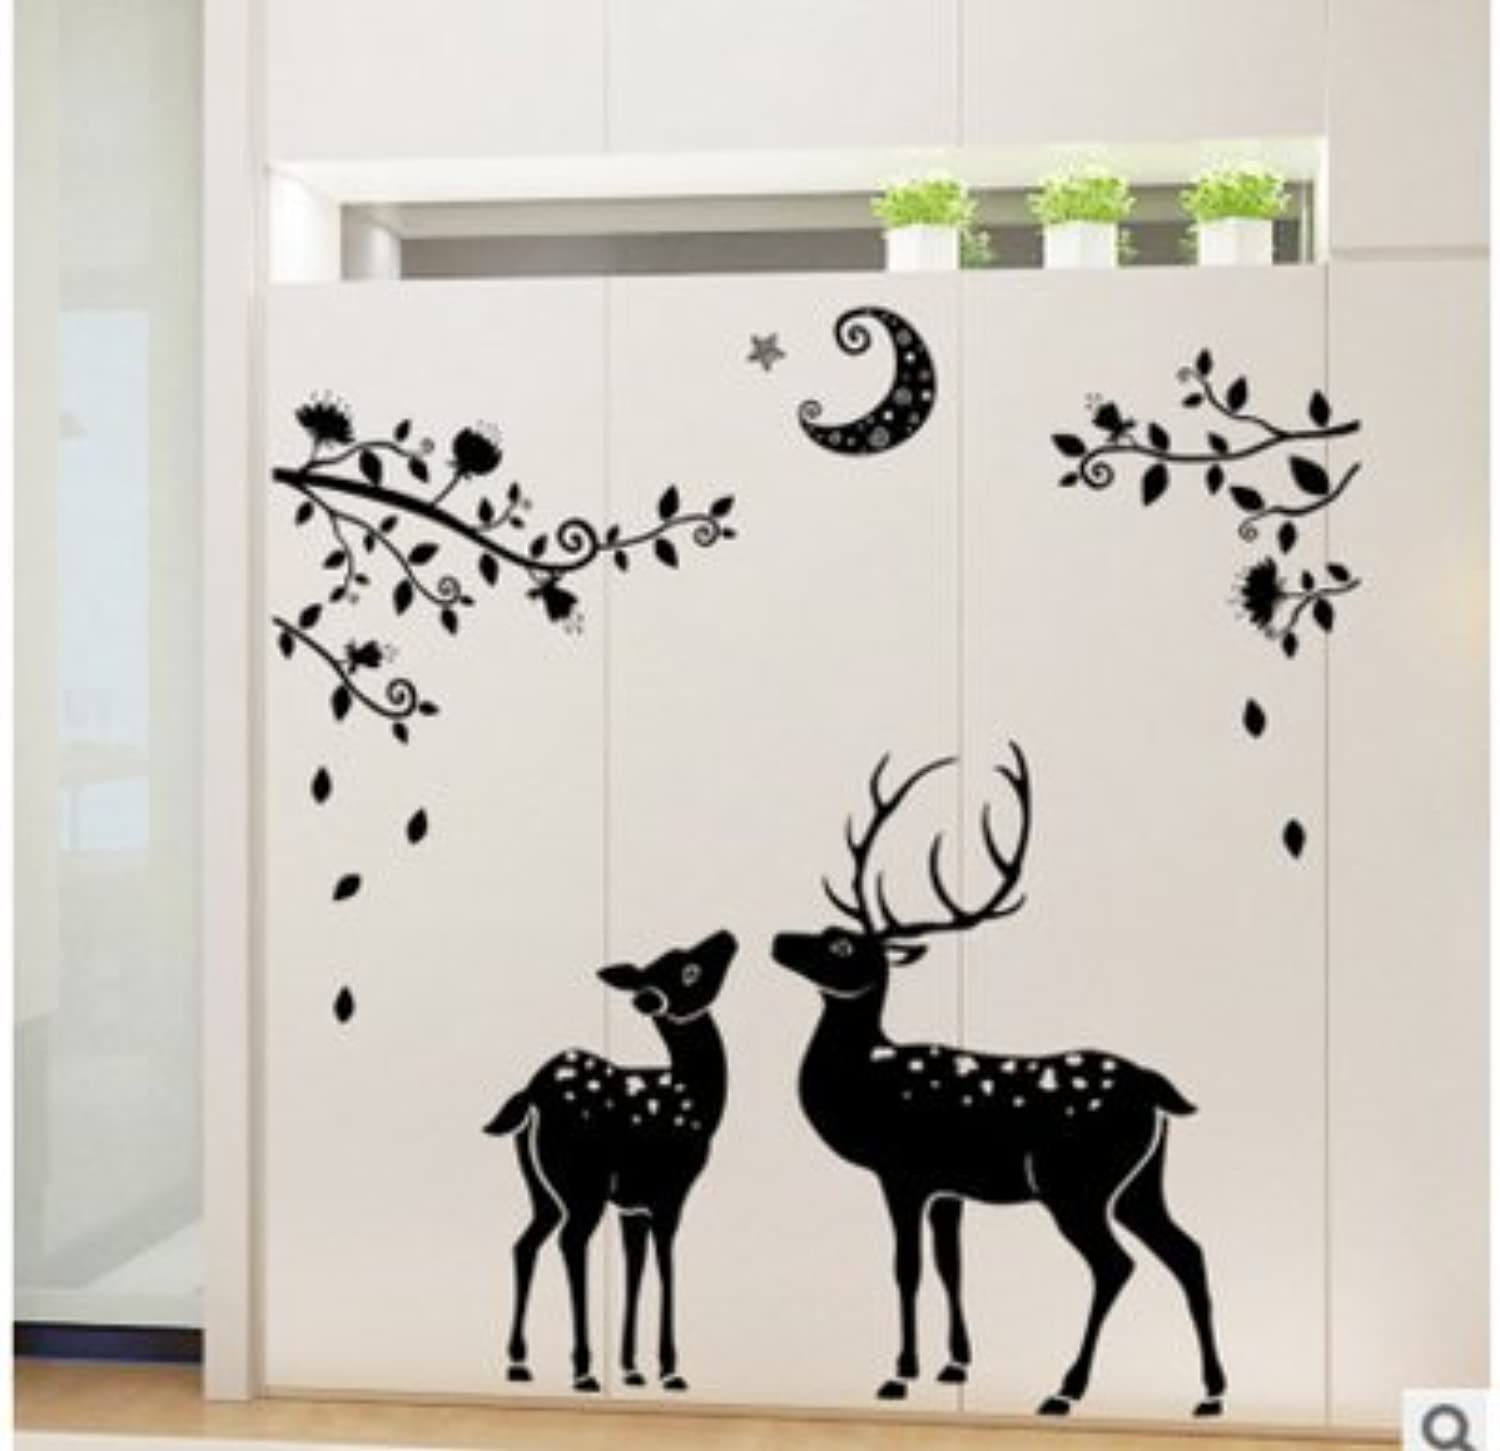 Znzbzt Deer Wall Decals Bedroom Creative Paintings on The Wall Art Decor Sticker, Maroon + Small Deer Silhouette, King